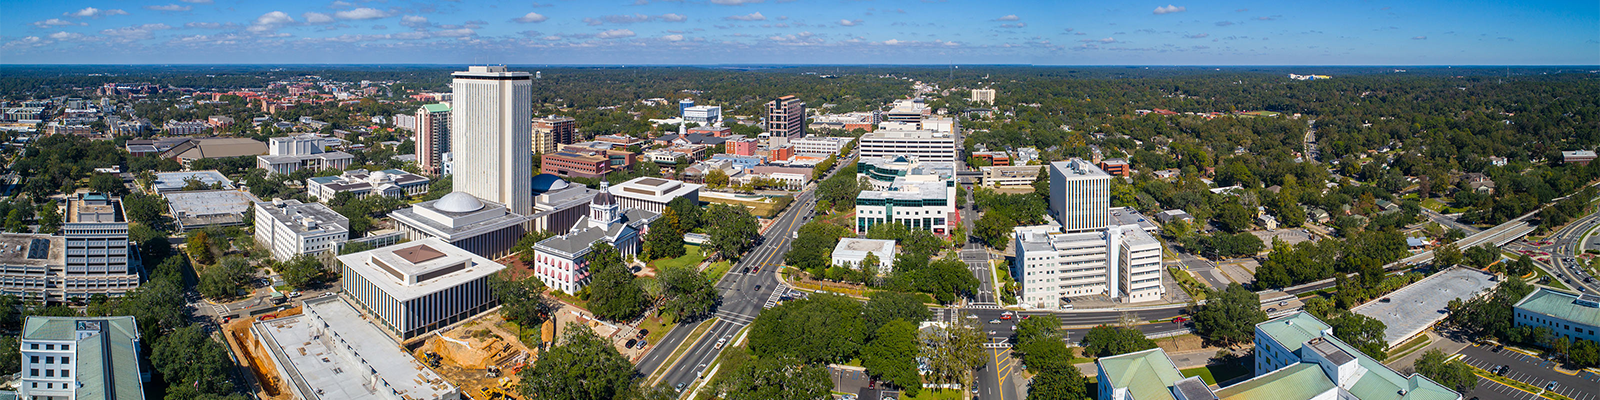 alt=Aerial view of downtown Tallahassee, Florida